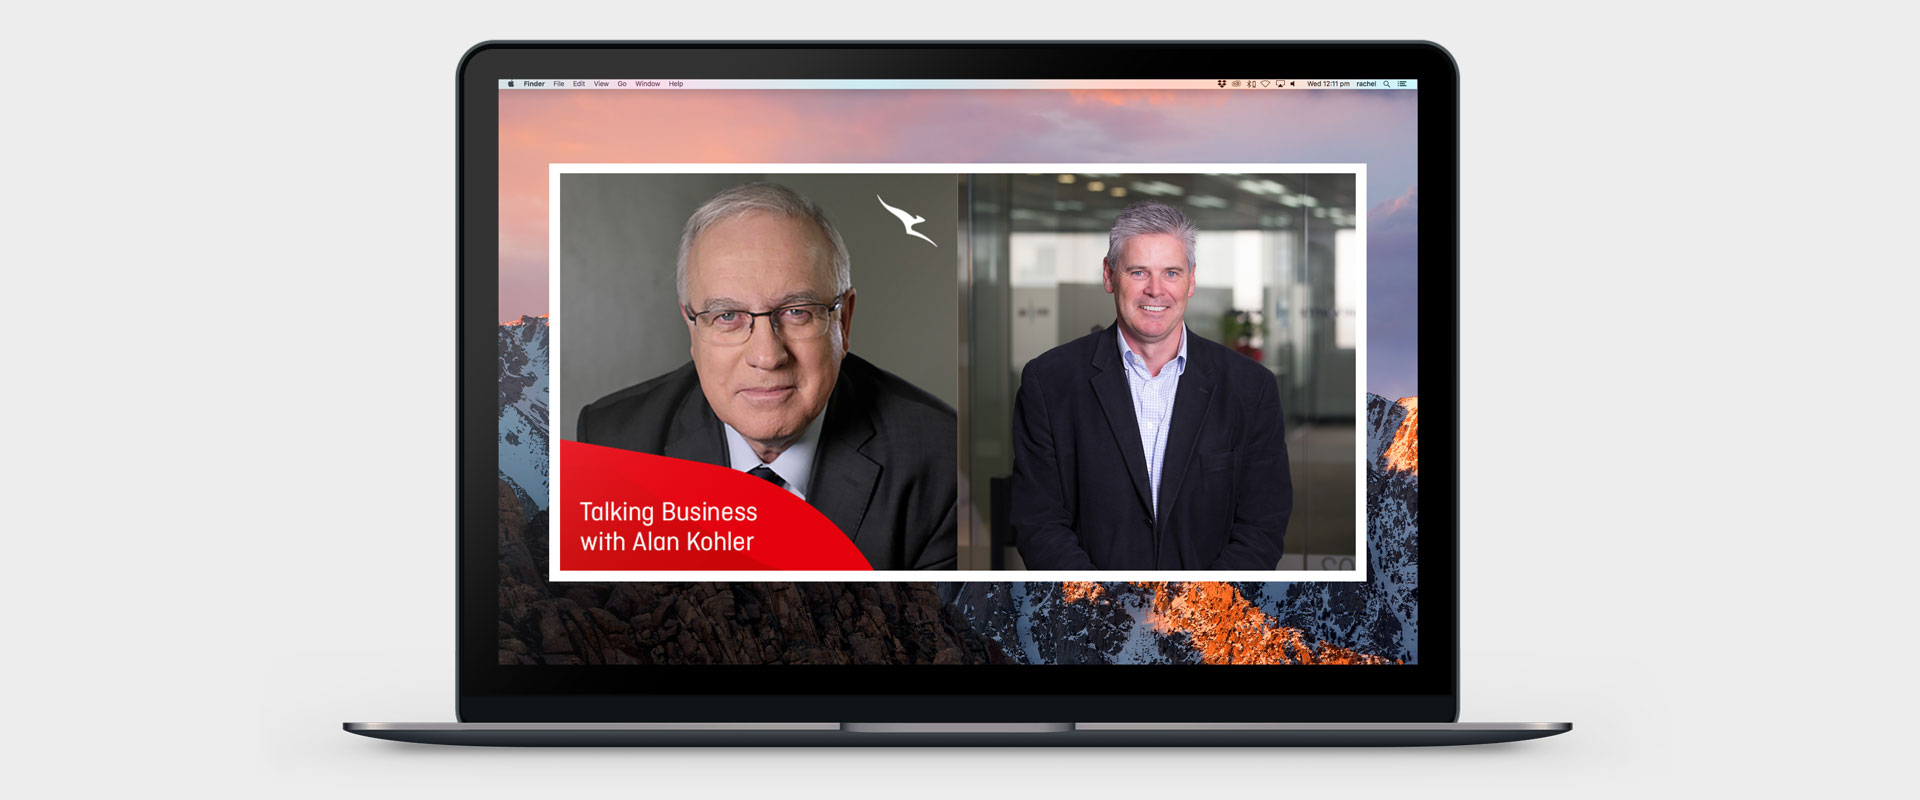 Alan Kohler and Damian Kernahan's images side-by-side on a laptop screen, showing them together in Alan's podcast; 'Talking Business'.